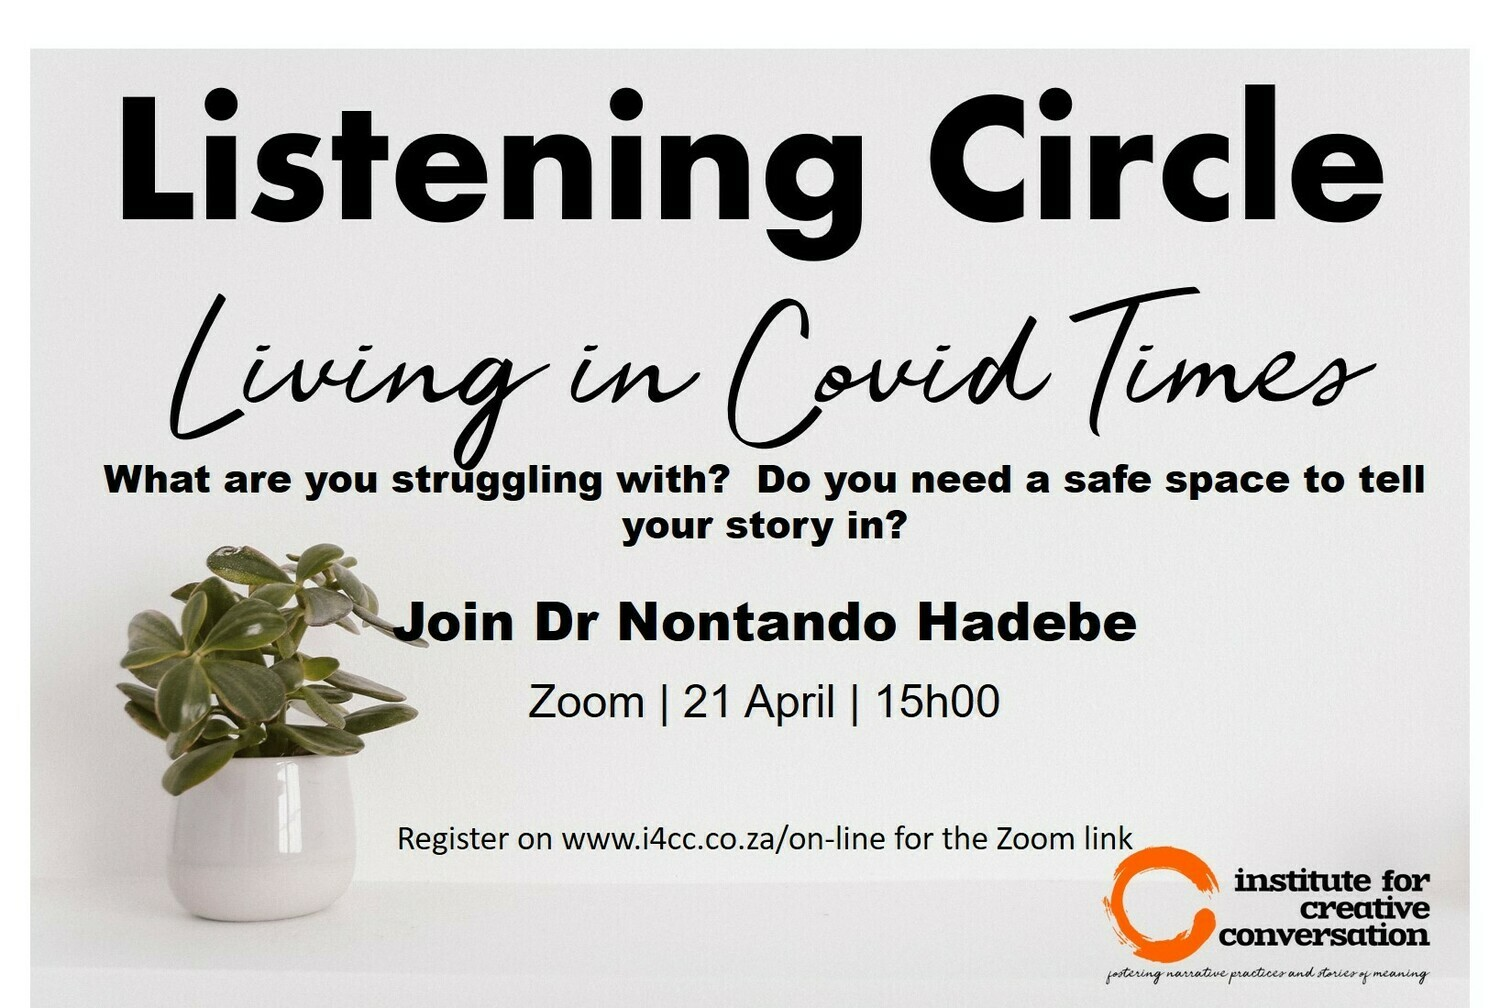 Listening Circle: Living in Covid Times